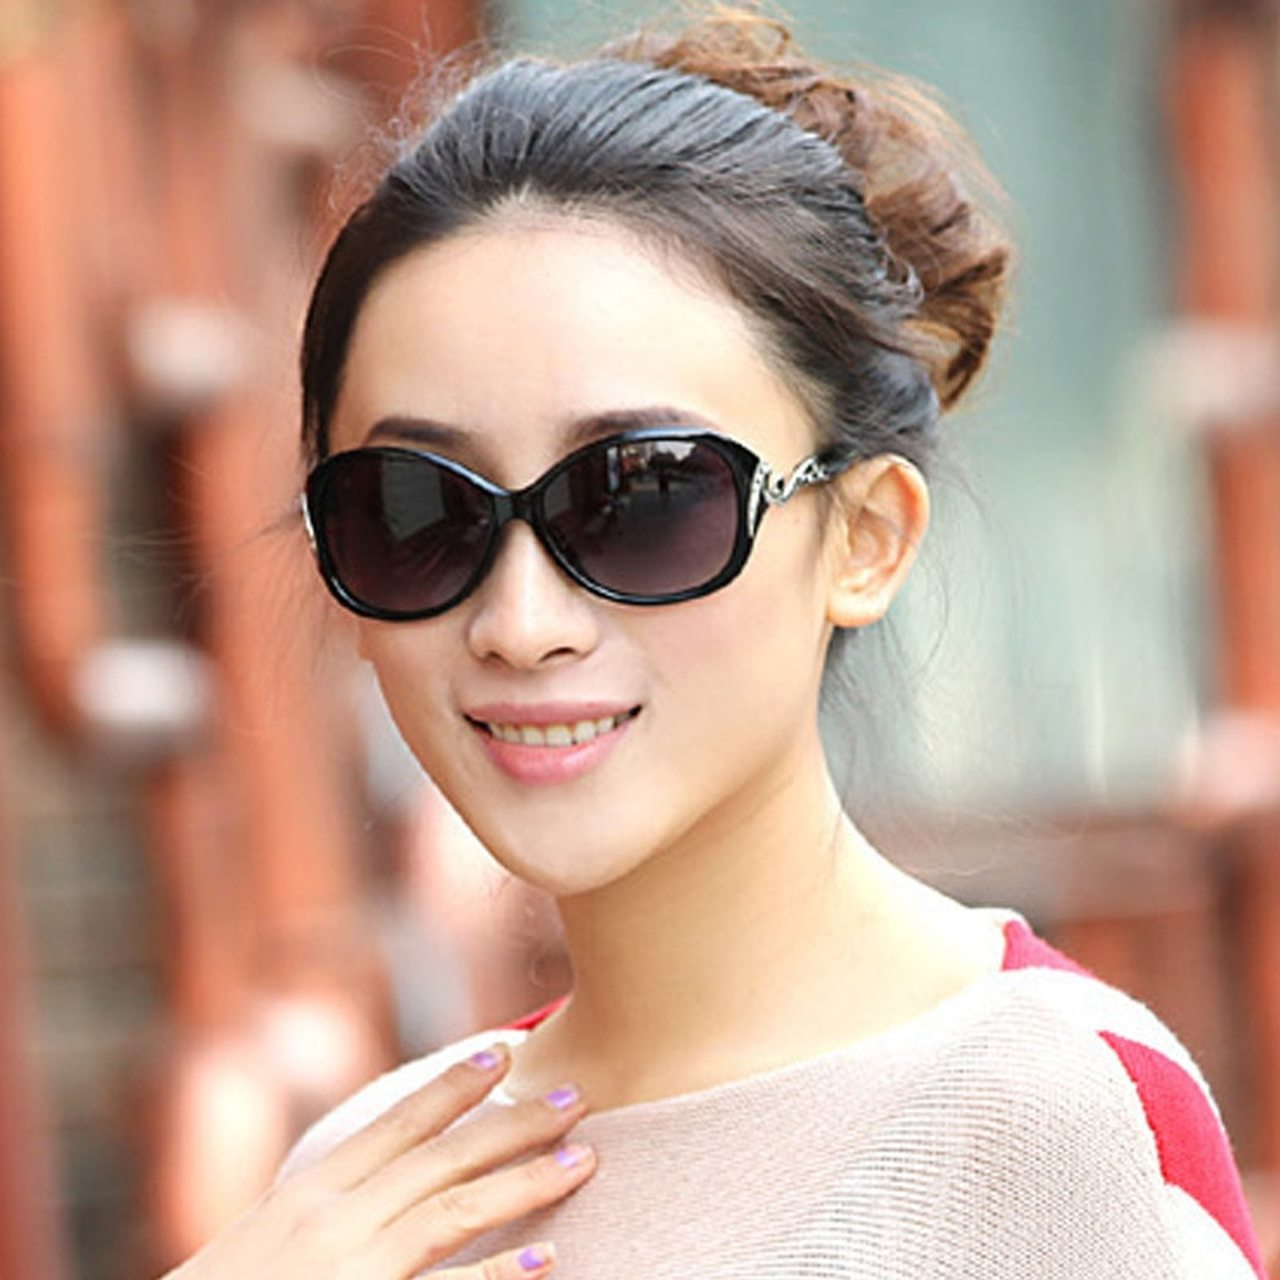 Trendy Sunglasses for Women